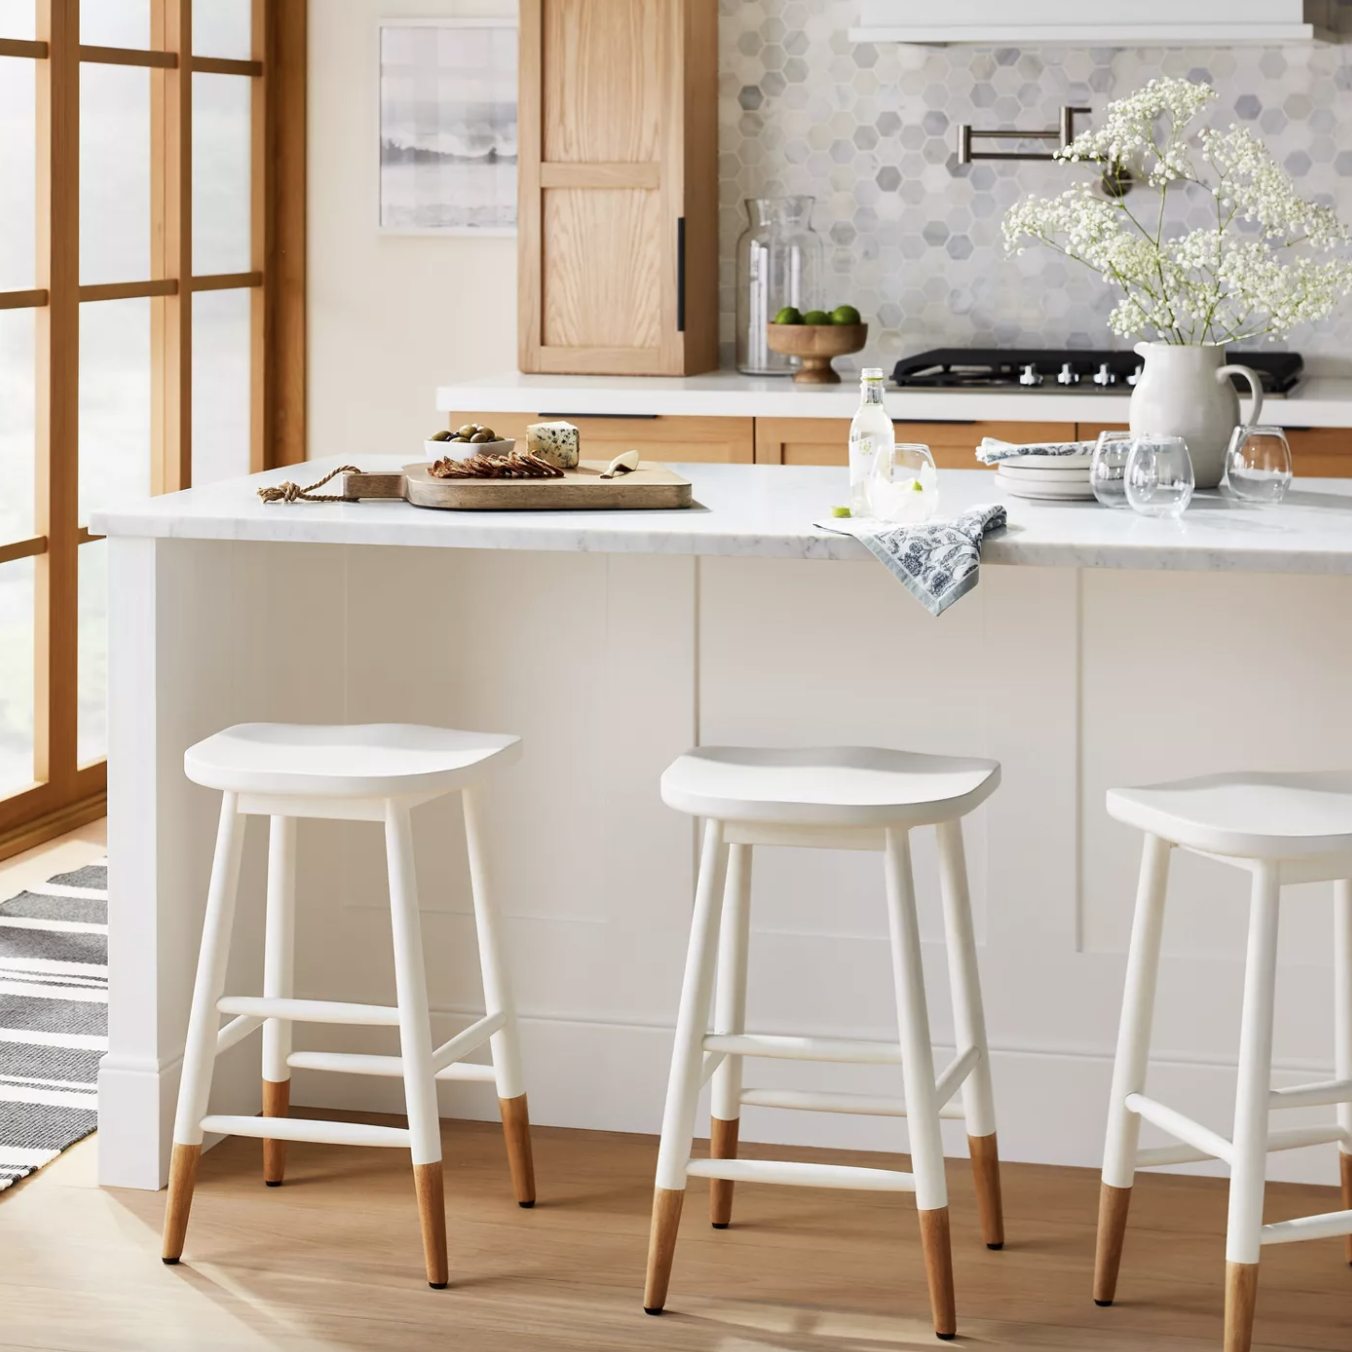 three white and brown bar stool pulled up to an island